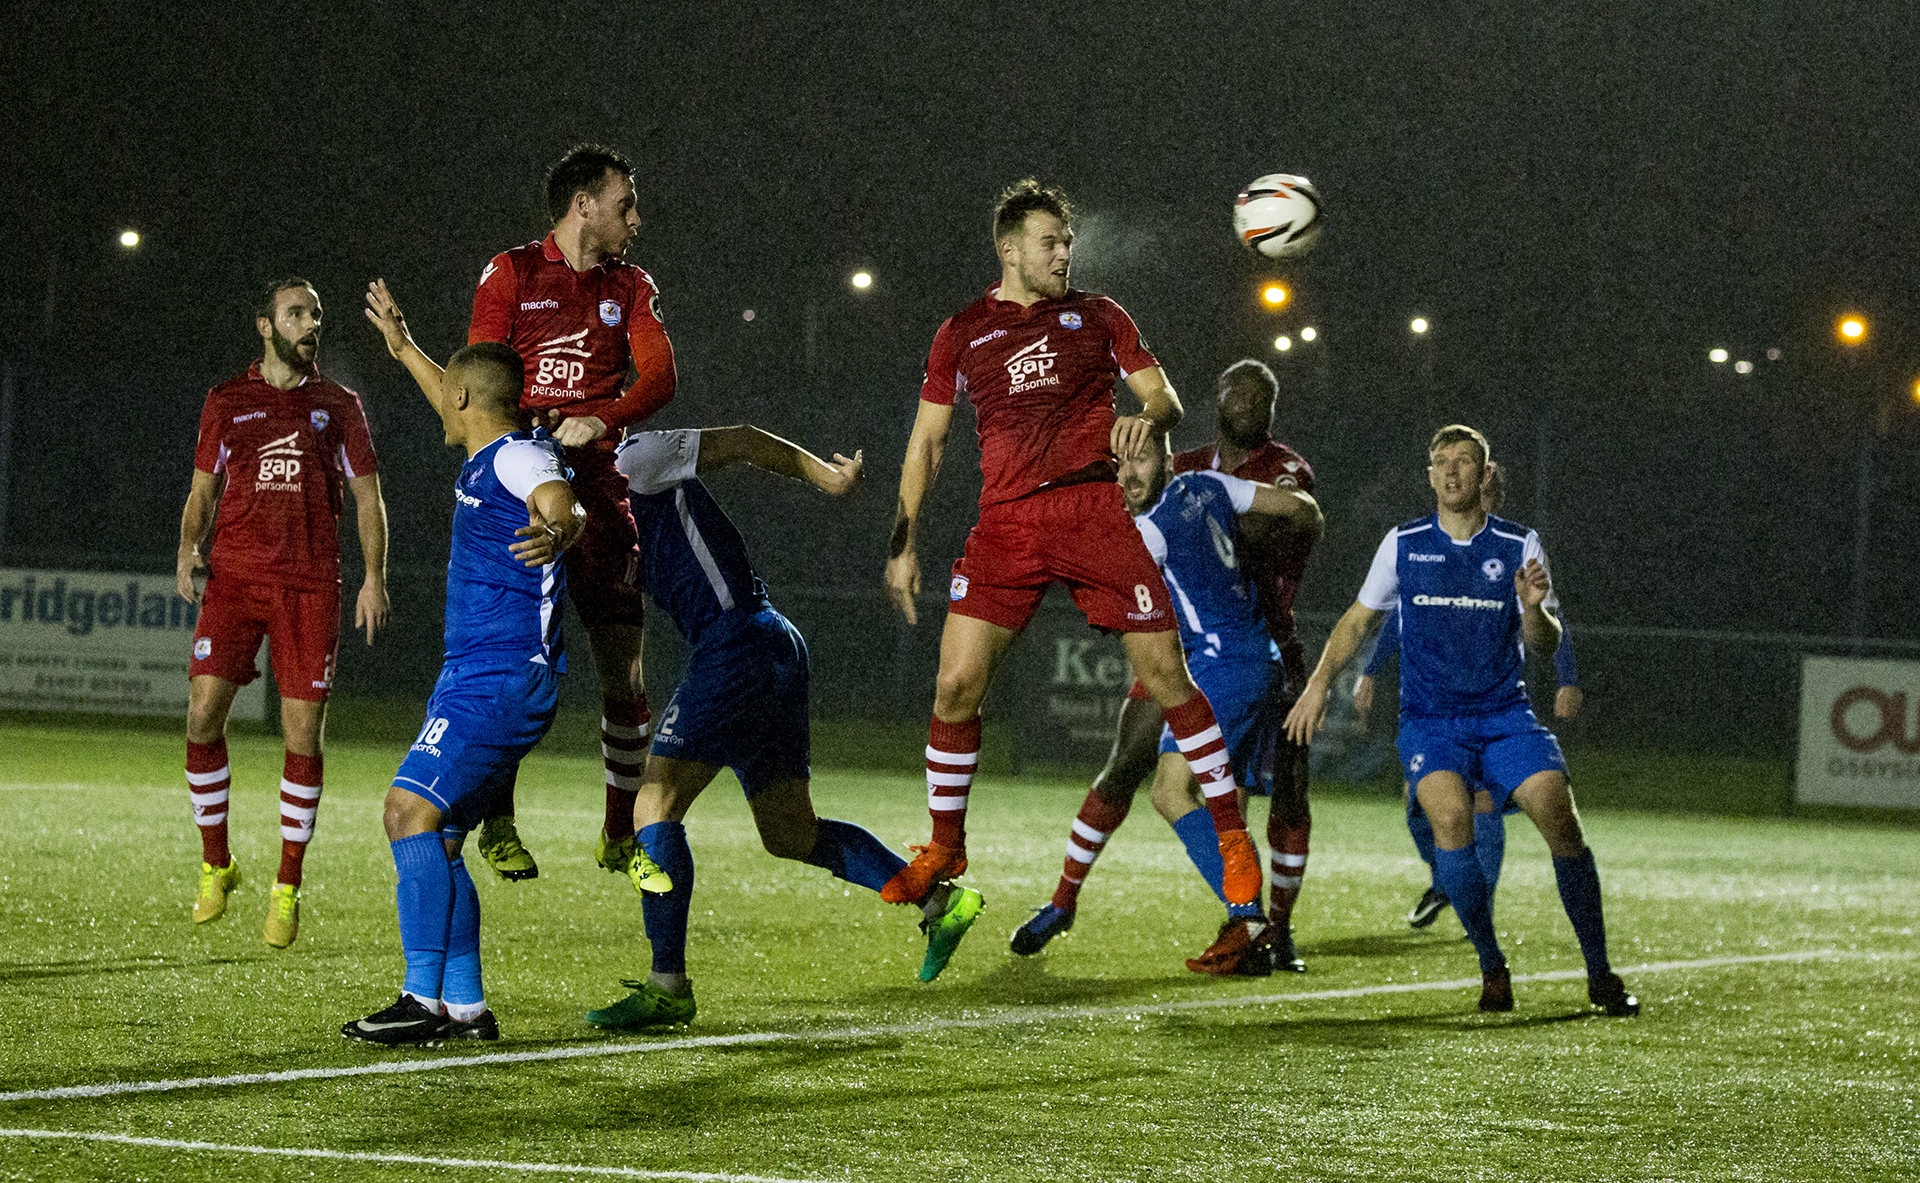 Callum Morris heads The Nomads in front in the first half - © NCM Media